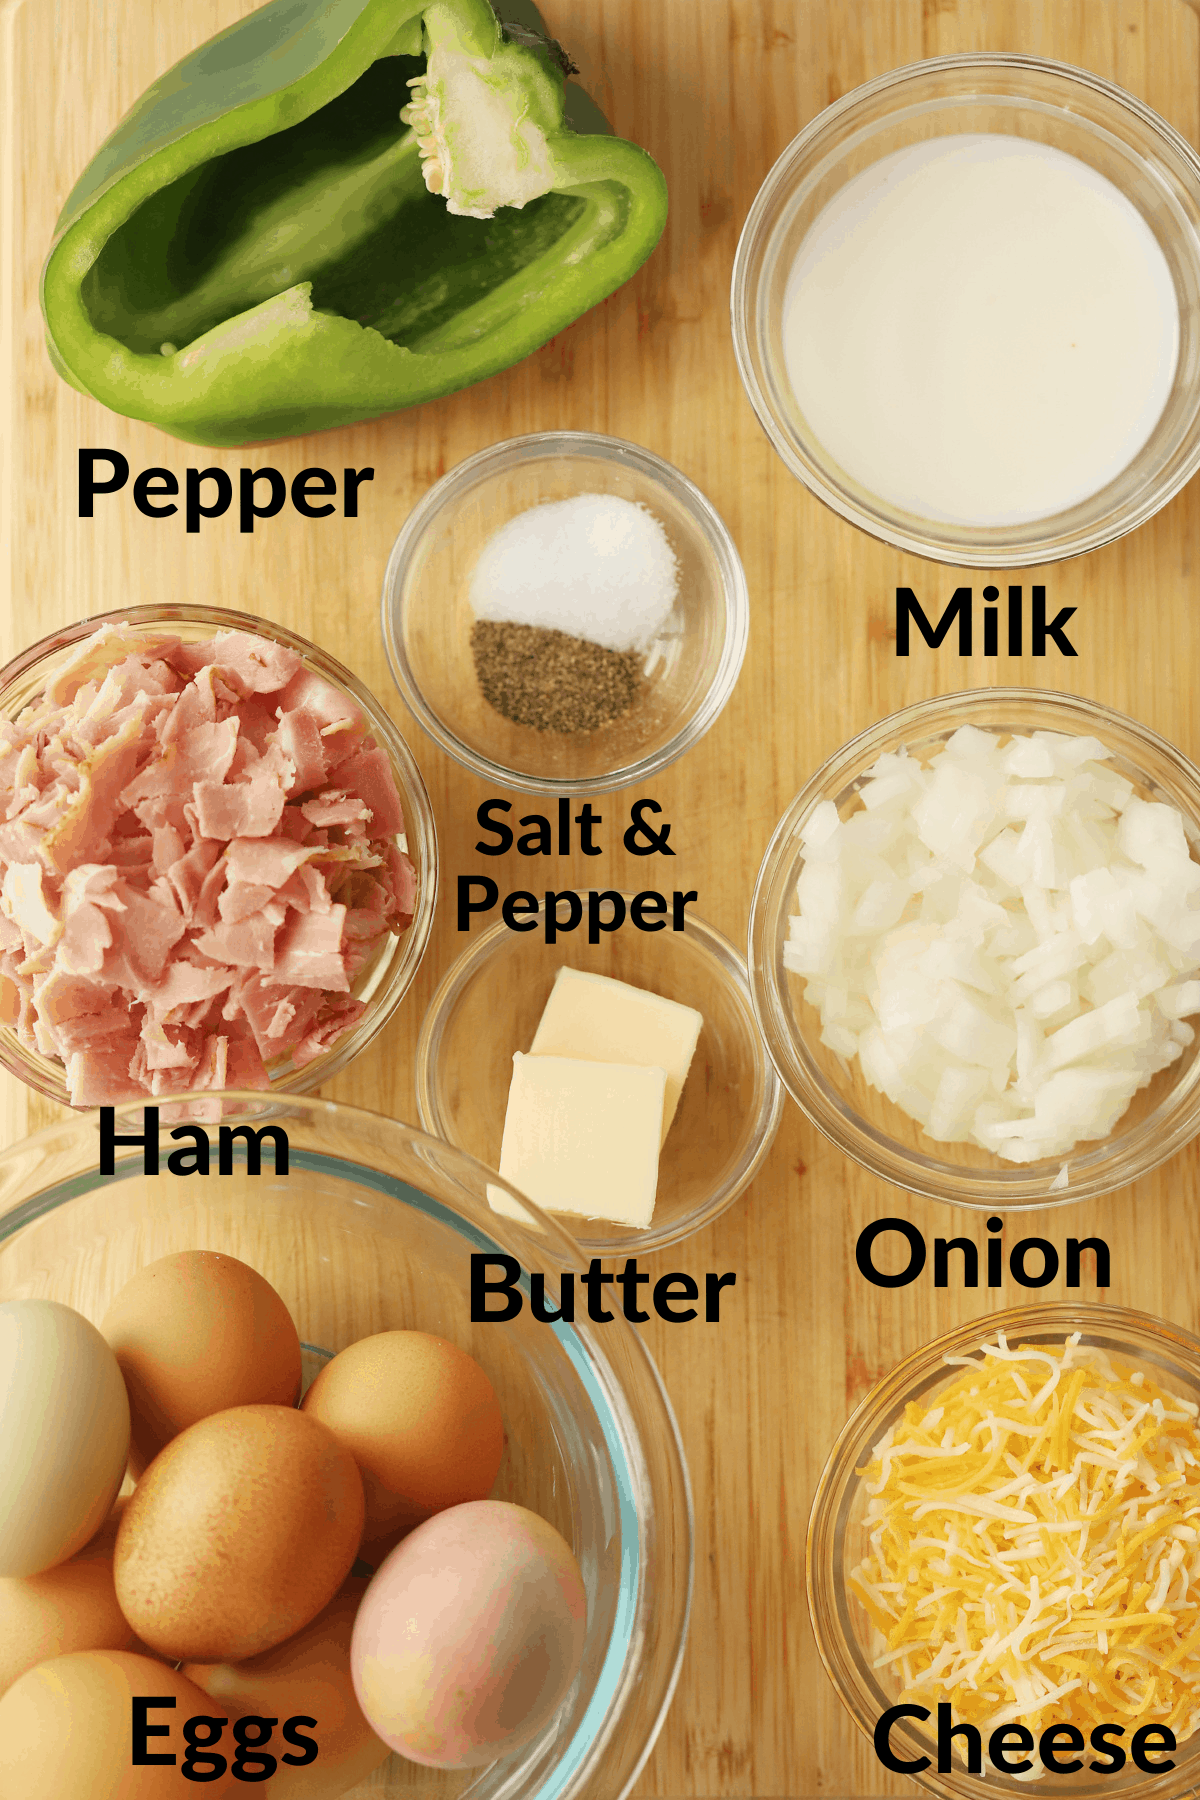 Separate ingredients for making this Baked Denver Omelet in small ramekins and bowls labeled with what they are.